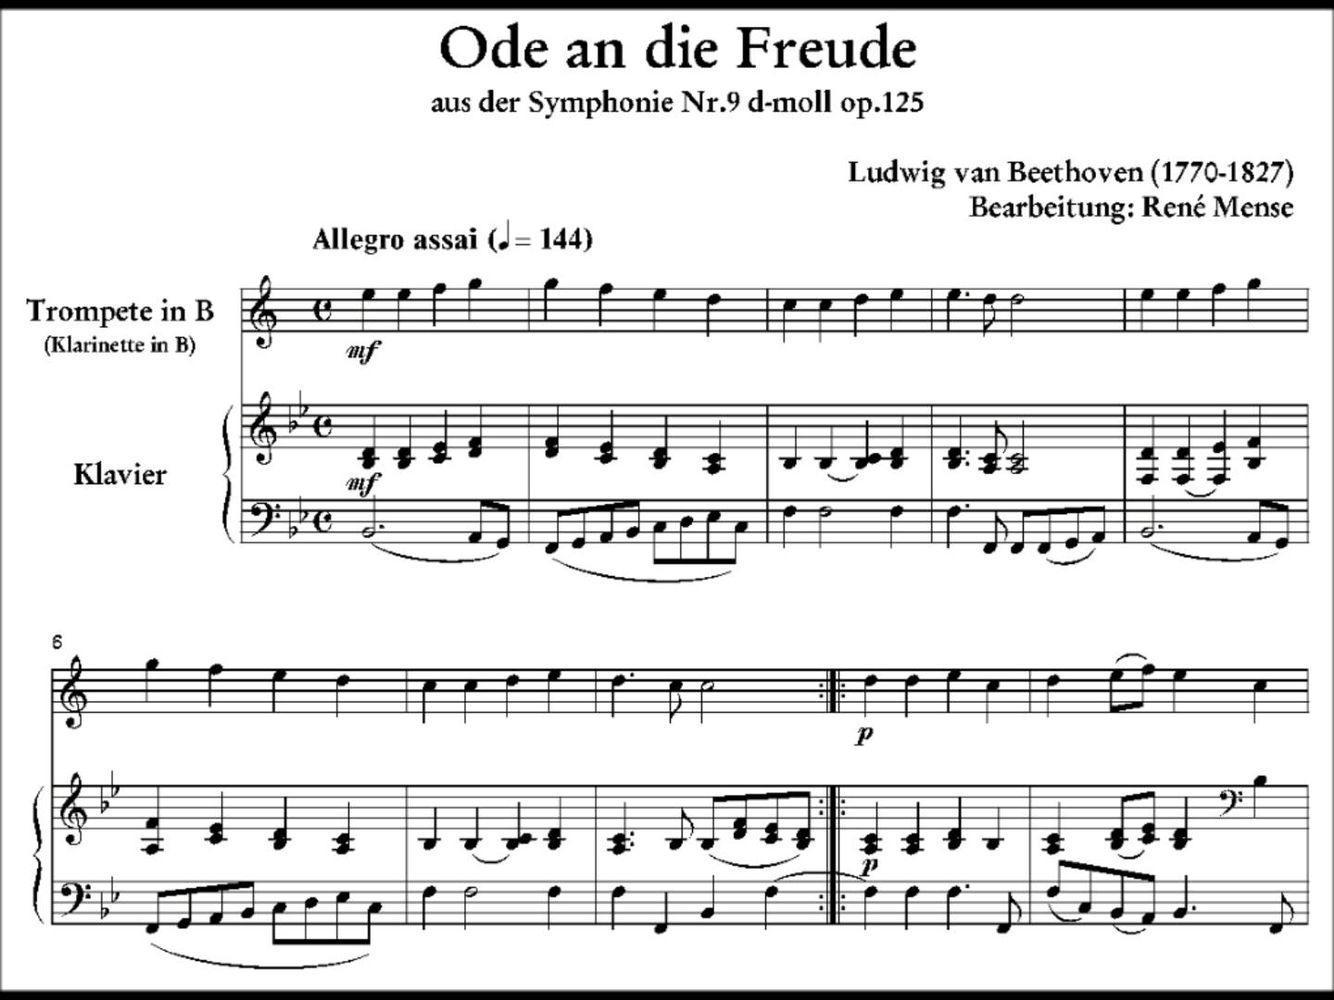 Lyrics And Translation For Ode An Die Freude Mit Bildern Ode